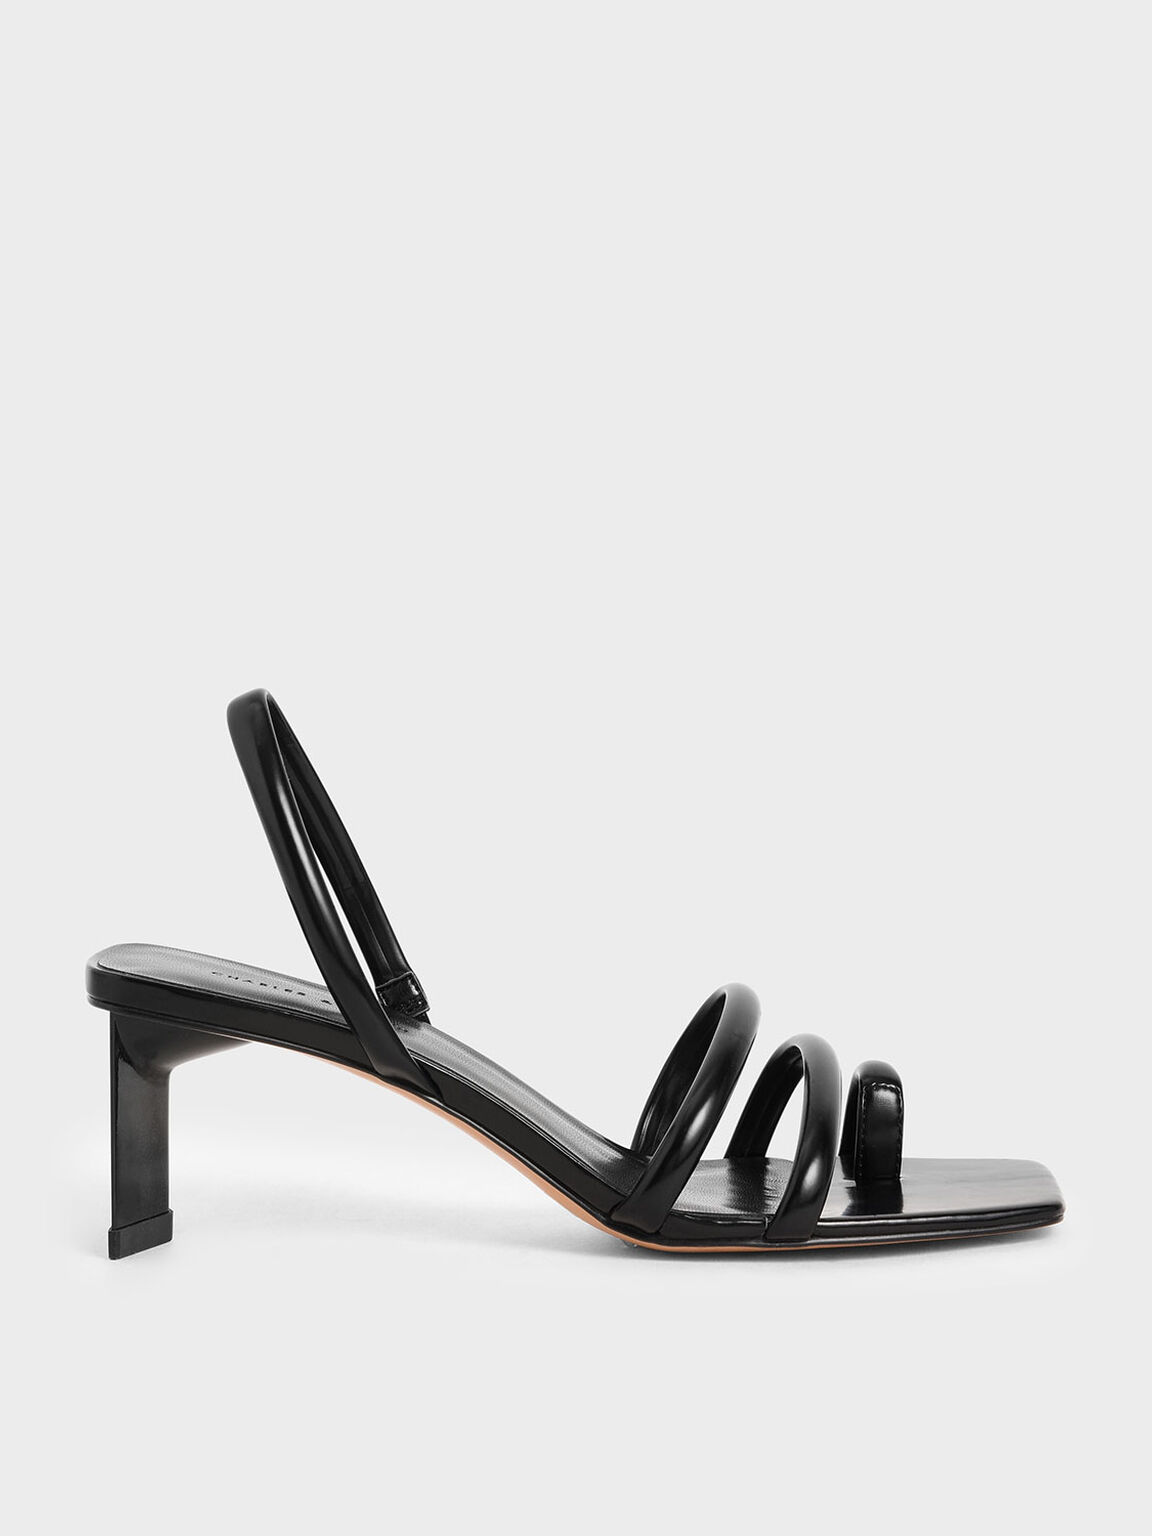 Toe Loop Strappy Slingback Heels, Black, hi-res